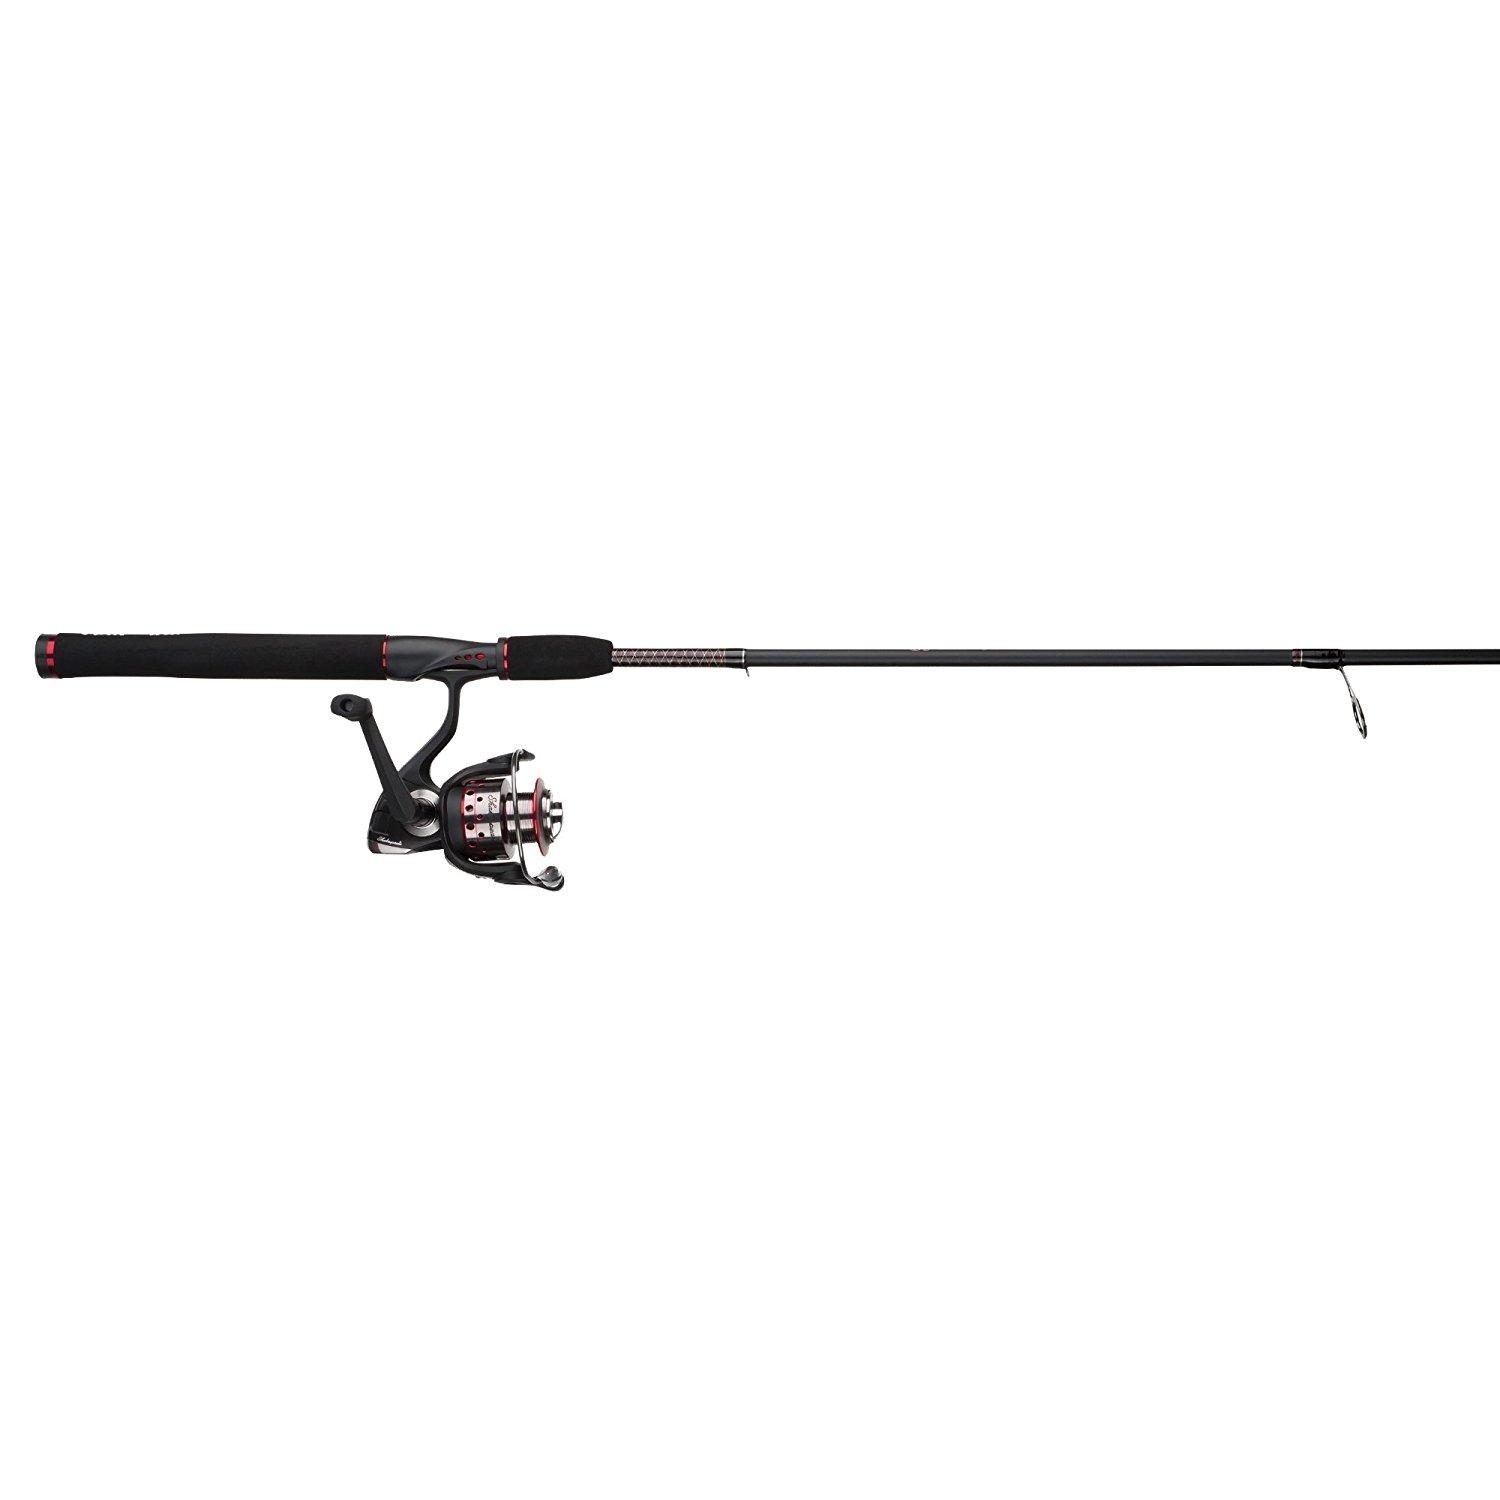 8. Ugly Stik GX2 Spinning Fishing Reel and Rod Combo